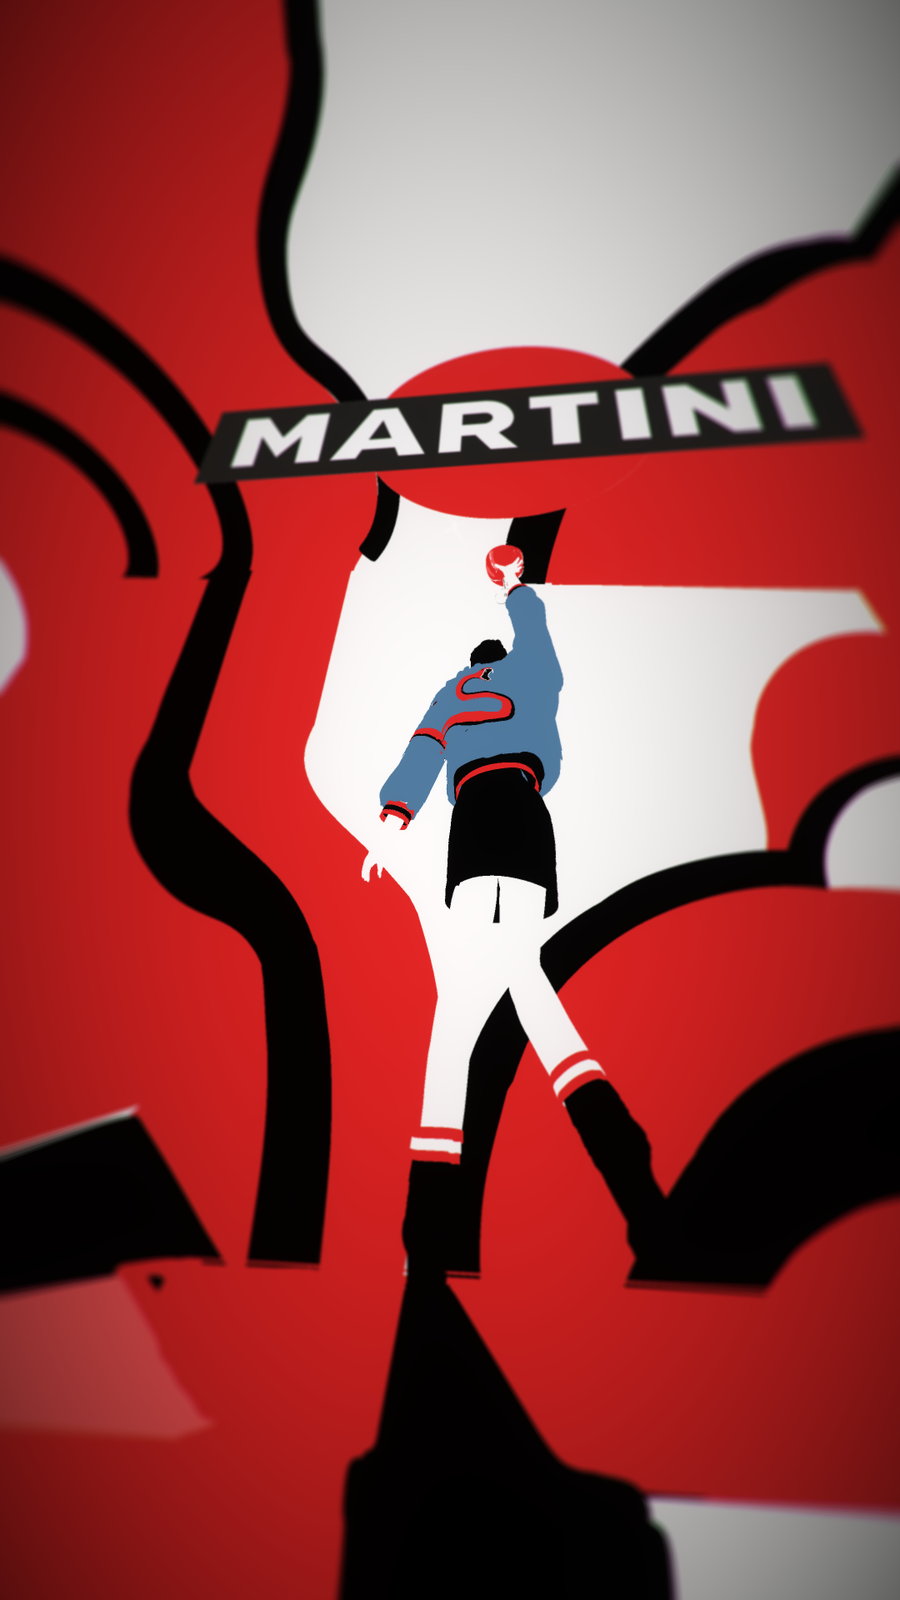 Ode to the Sun – Martini, Emiliano Ponzi 7